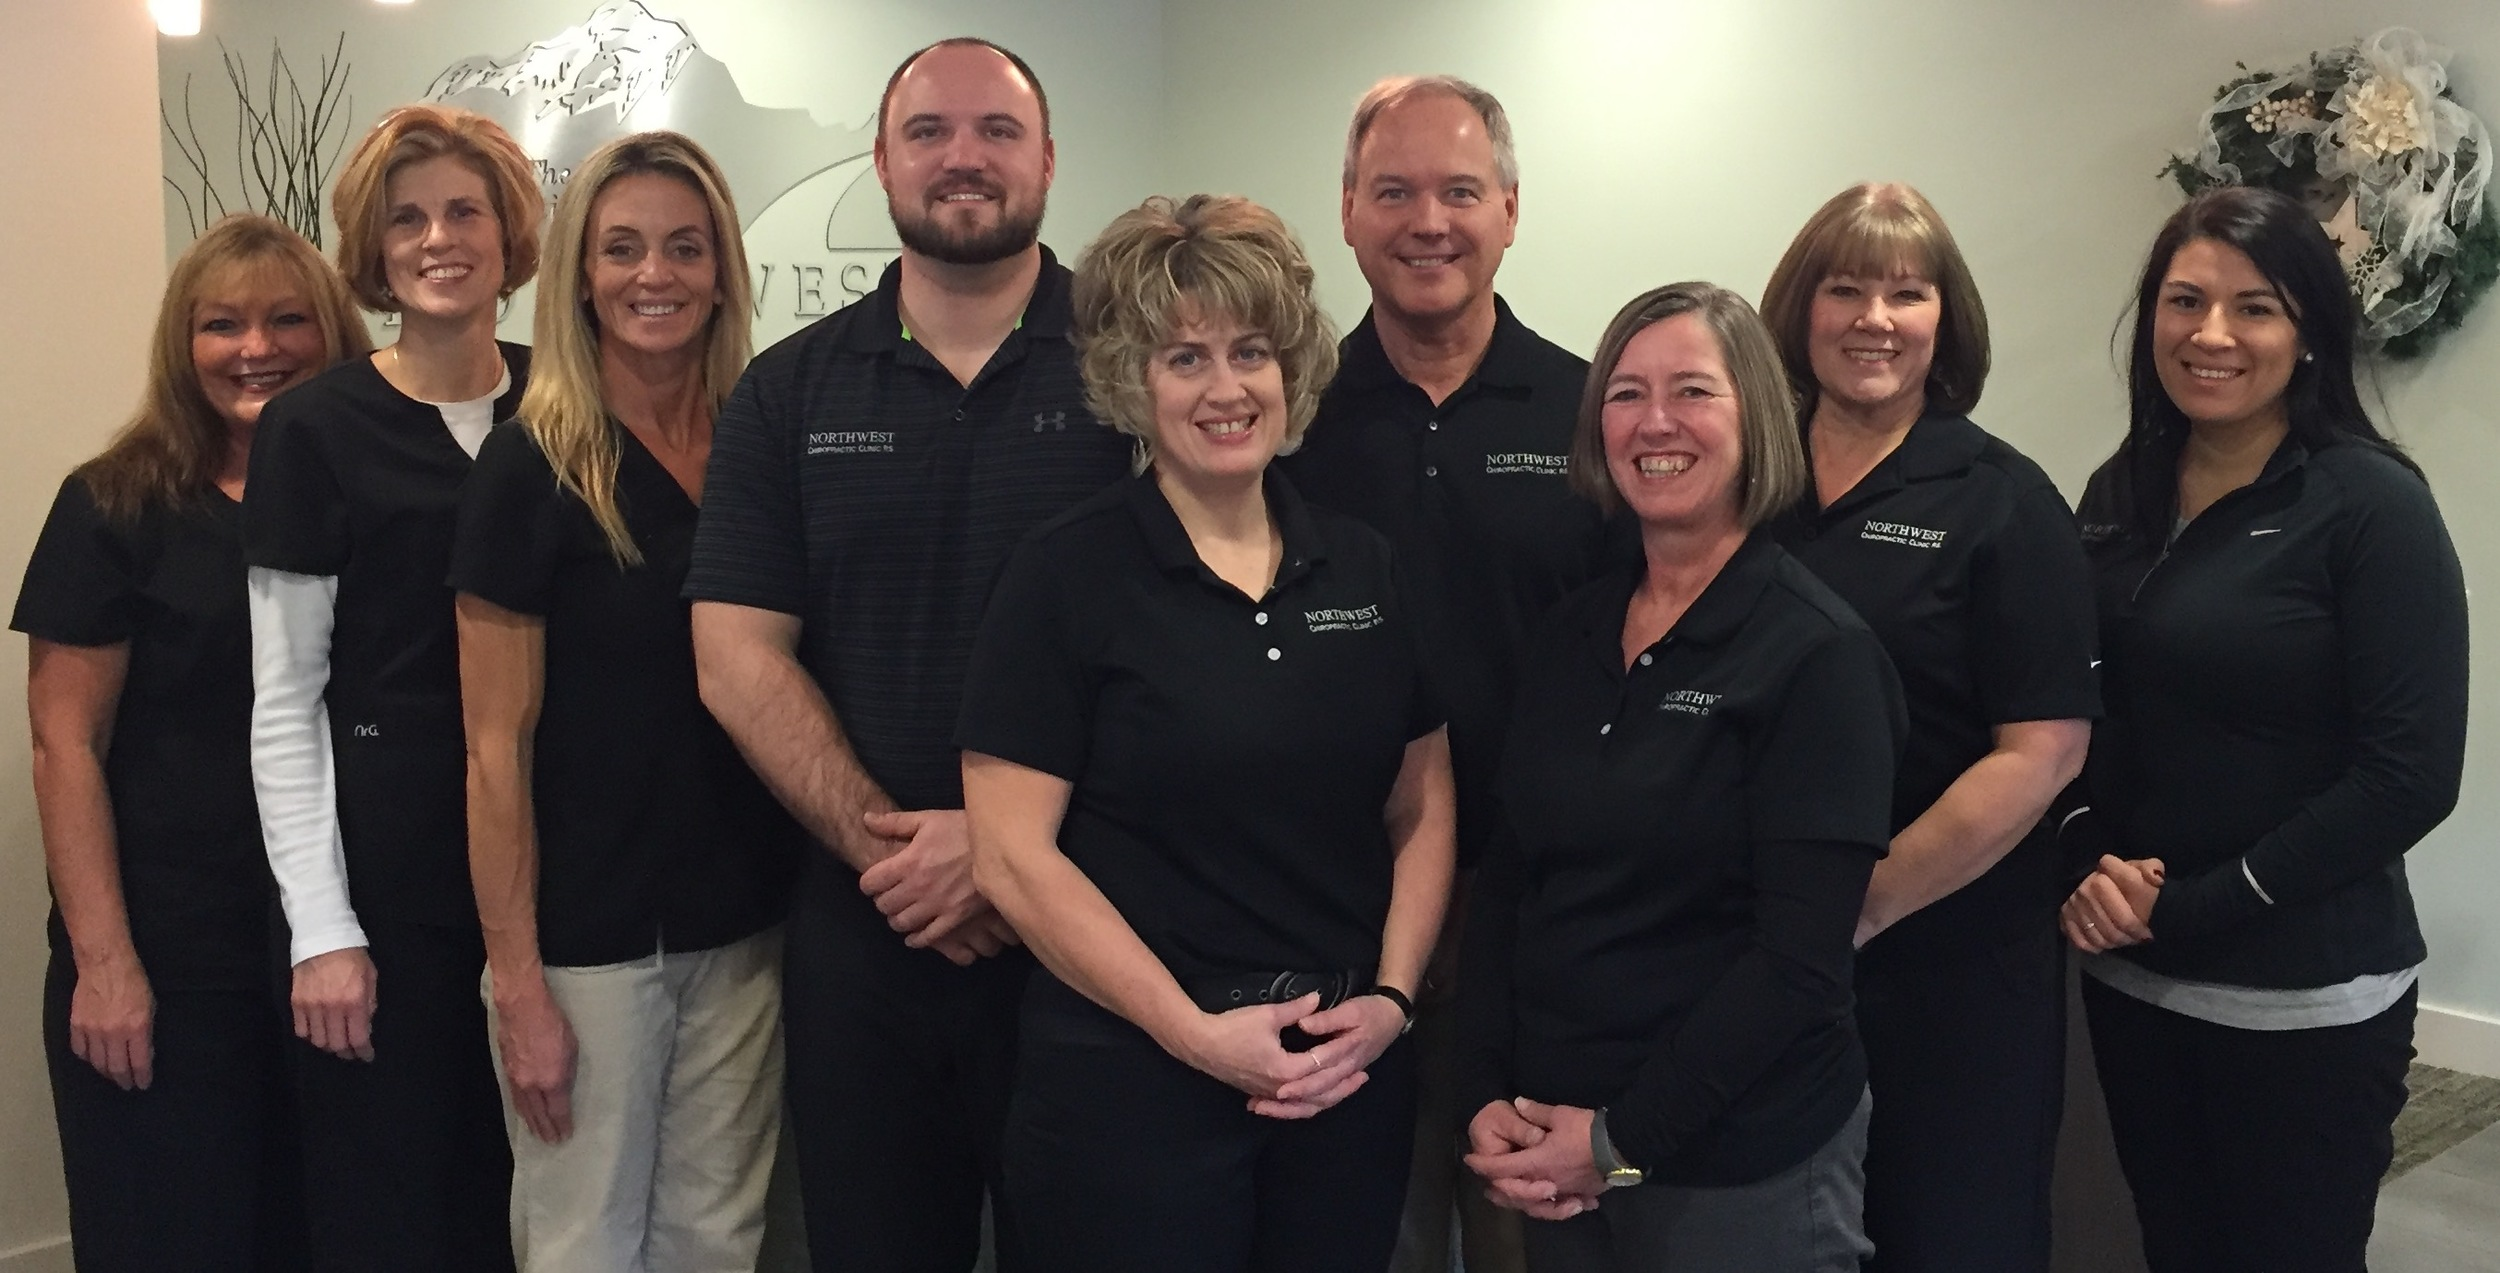 Northwest Chiropractic Clinic